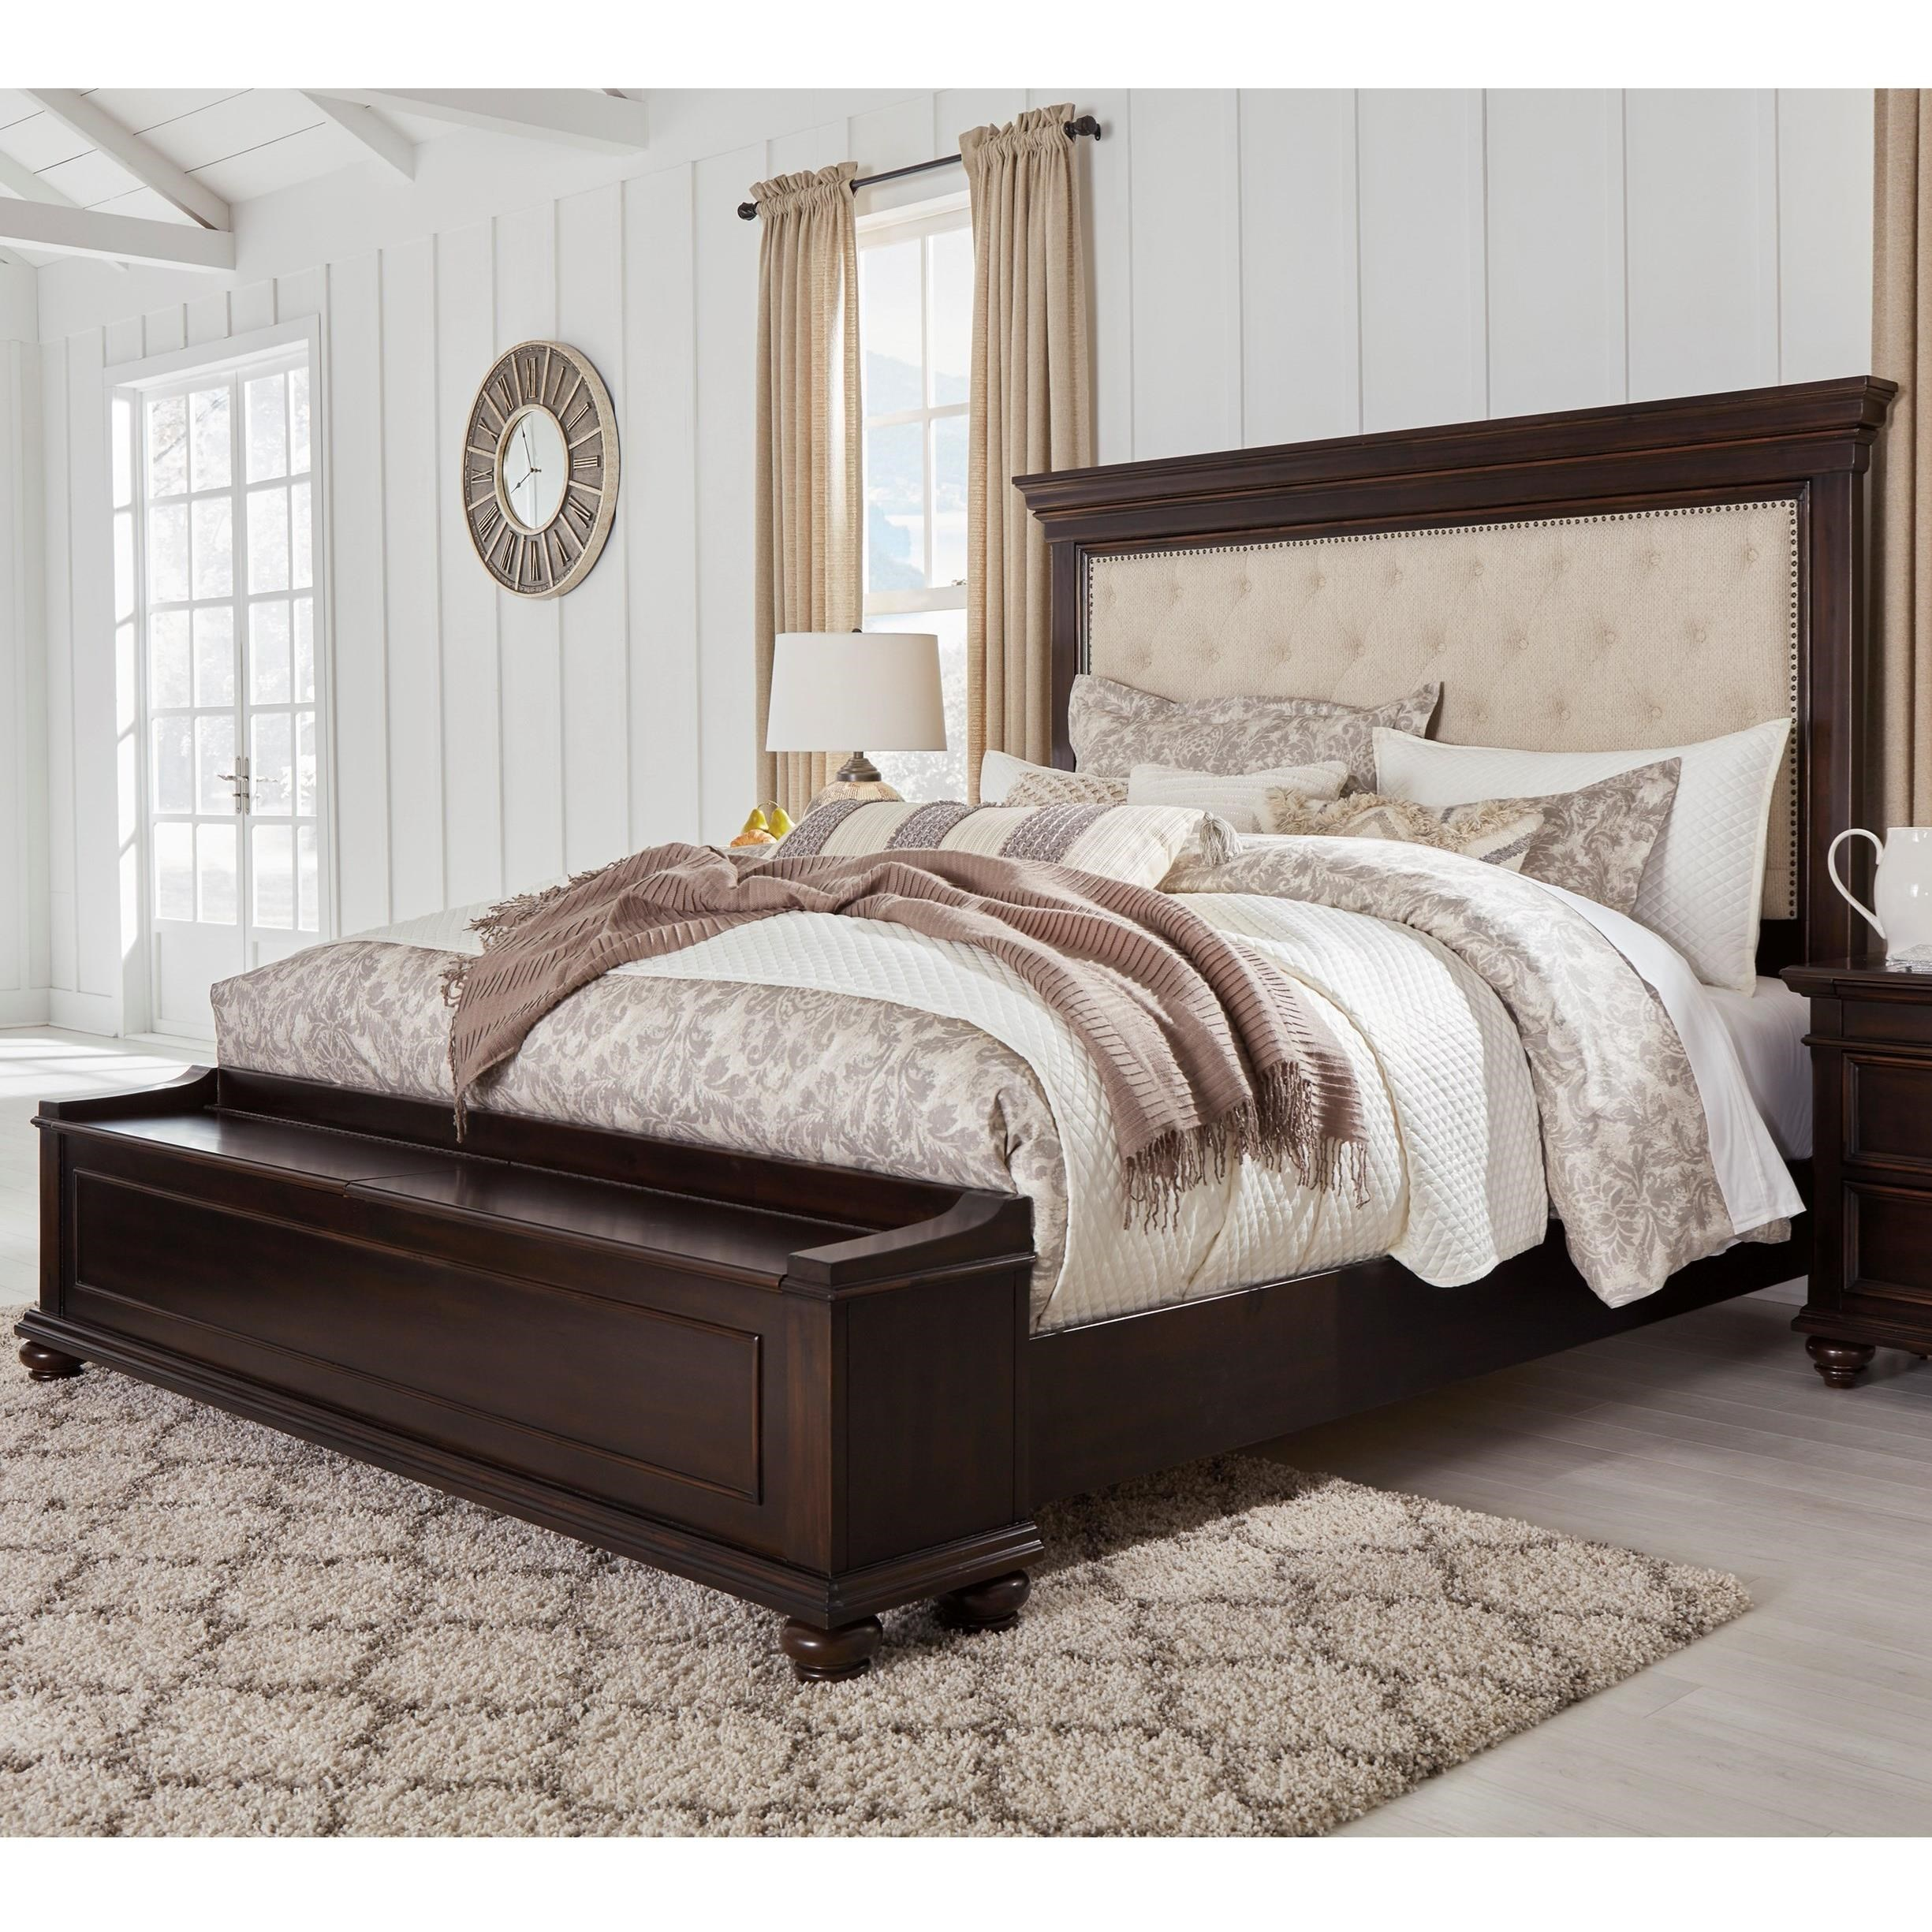 Bench By Bed: Traditional King Upholstered Bed With Footboard Storage